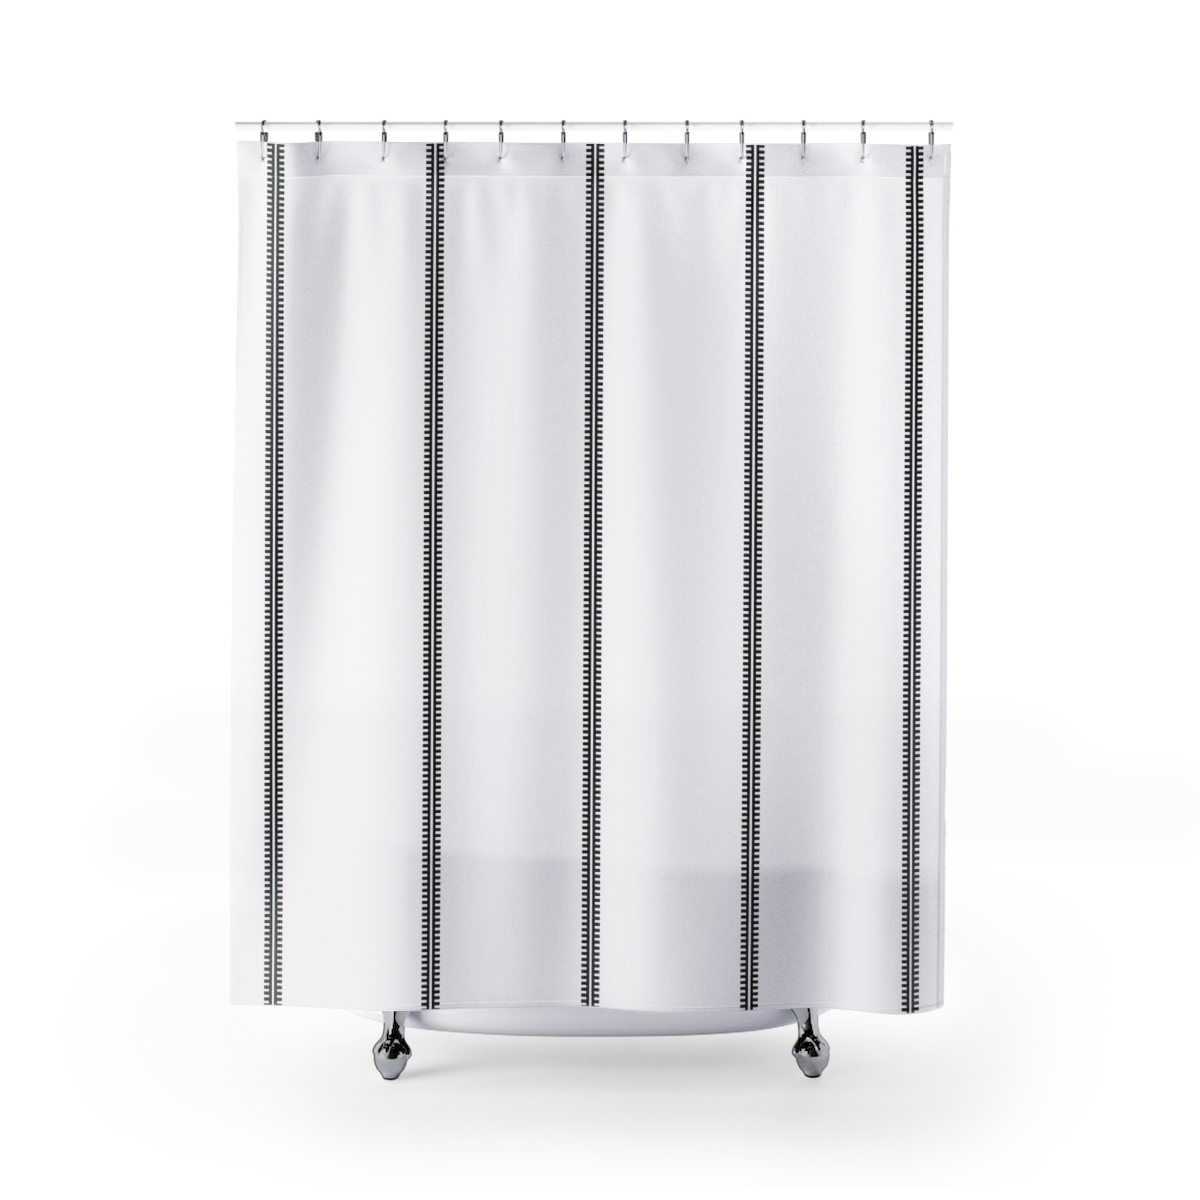 Classy Black & White Shower Curtain inspired by Mud Cloth linear motifs